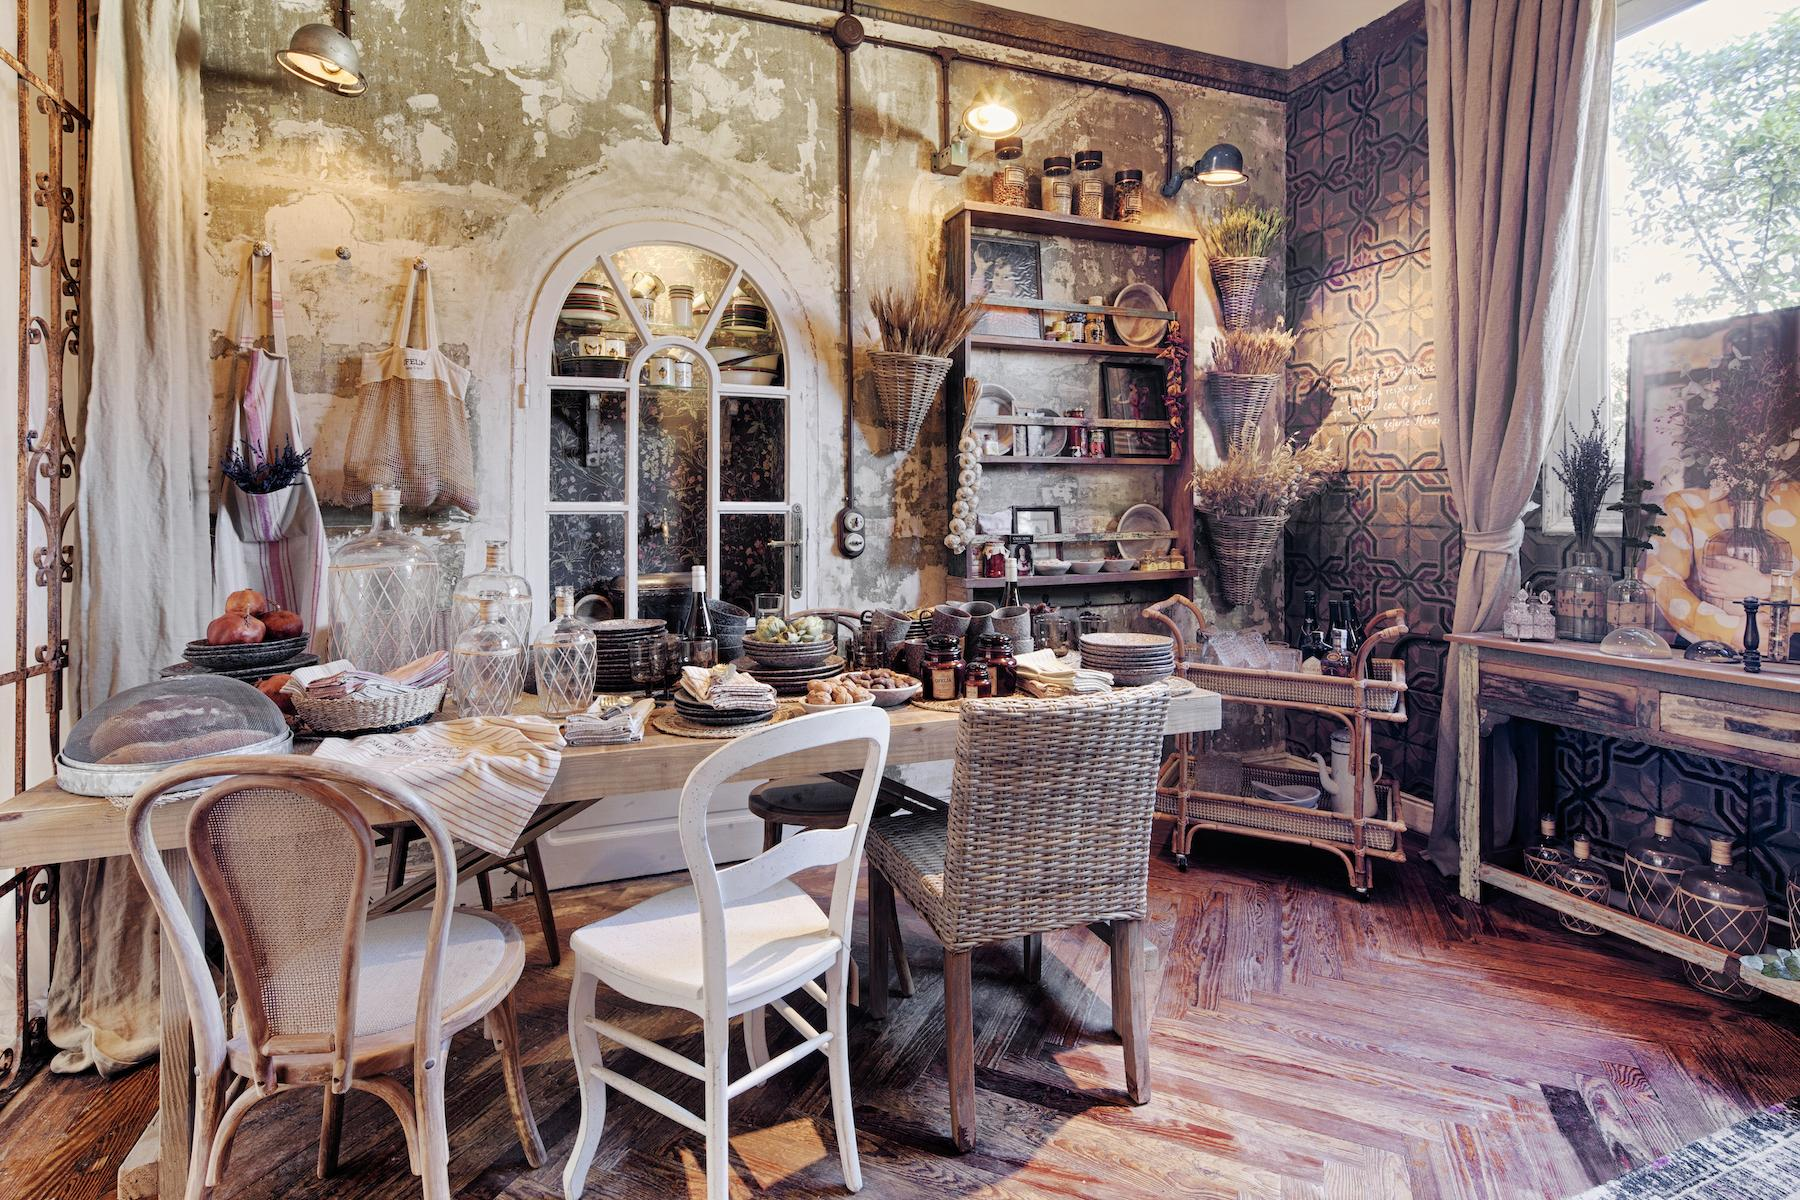 50-salon-comedor-ofelia-home-francisco-segarra-casa-decor-2019-01